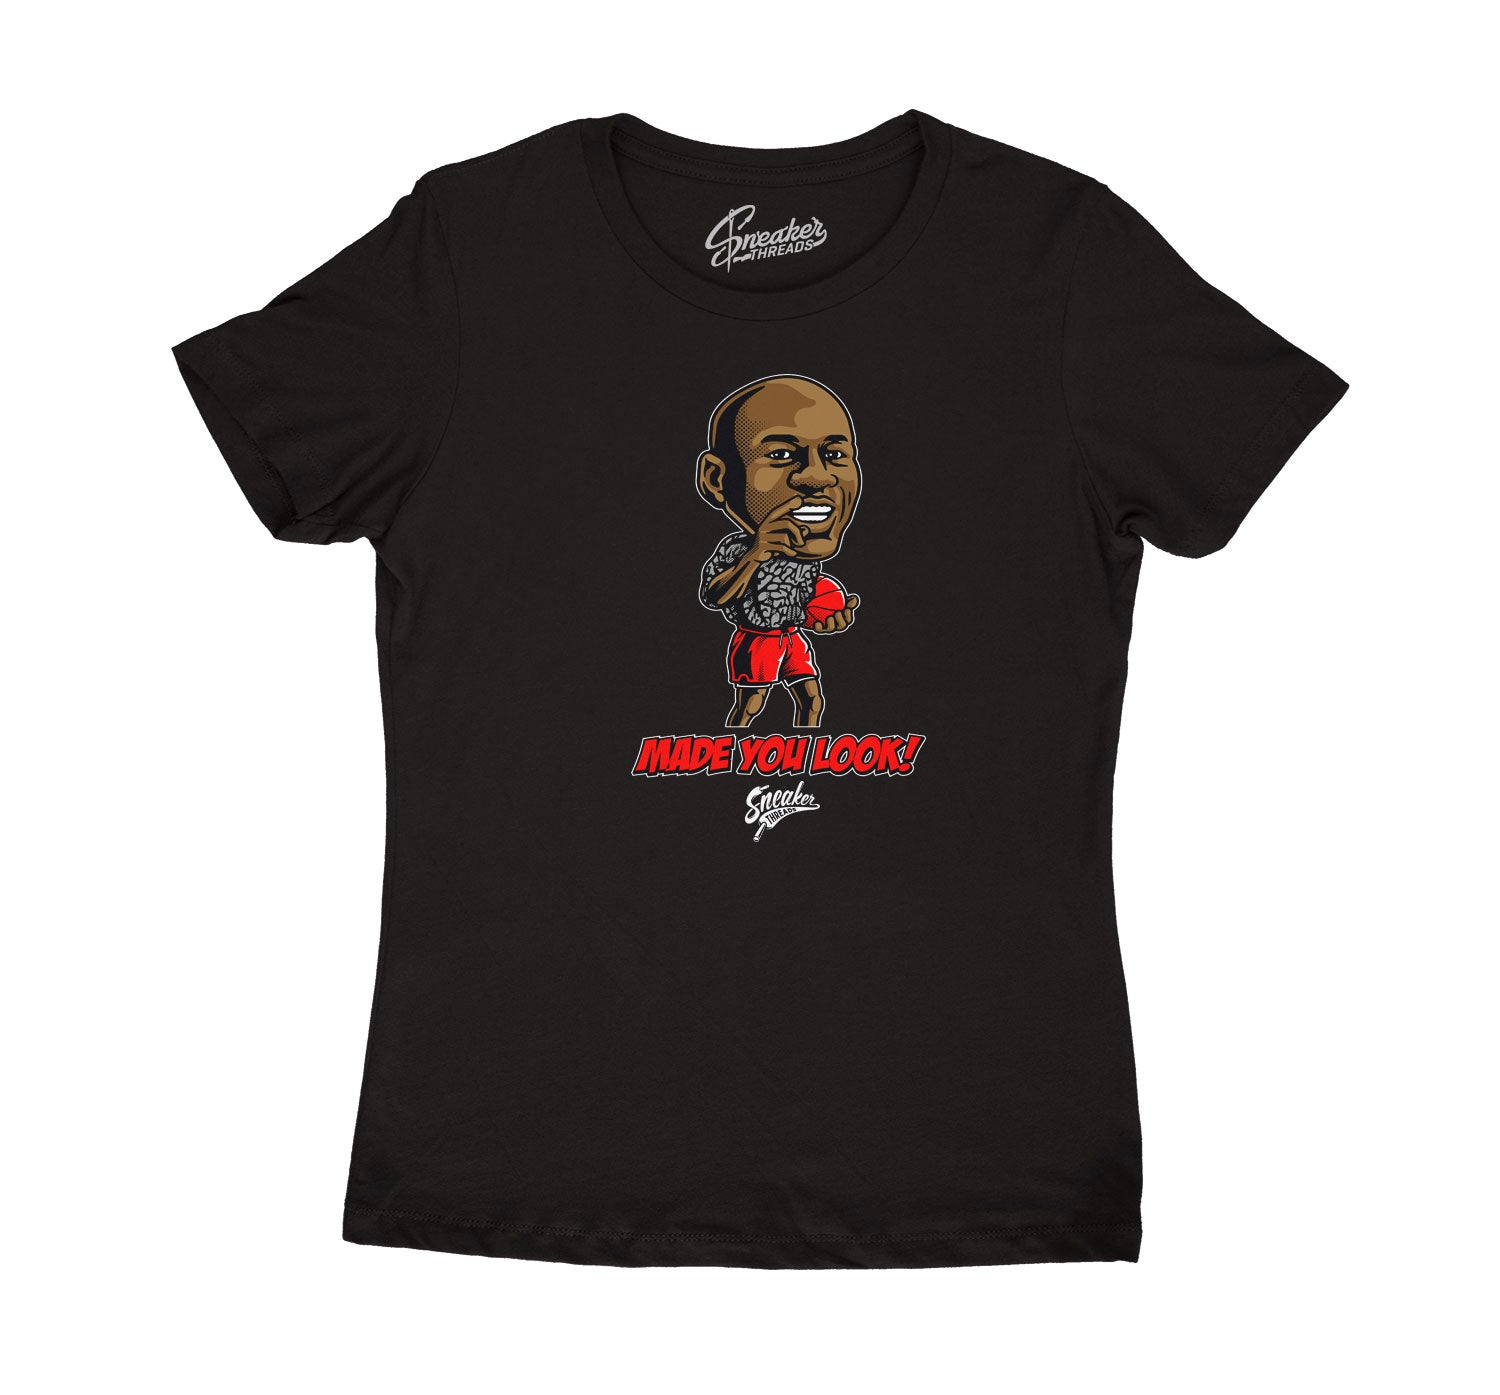 Womens Red Cement 3 Shirt - Made You Look - Black